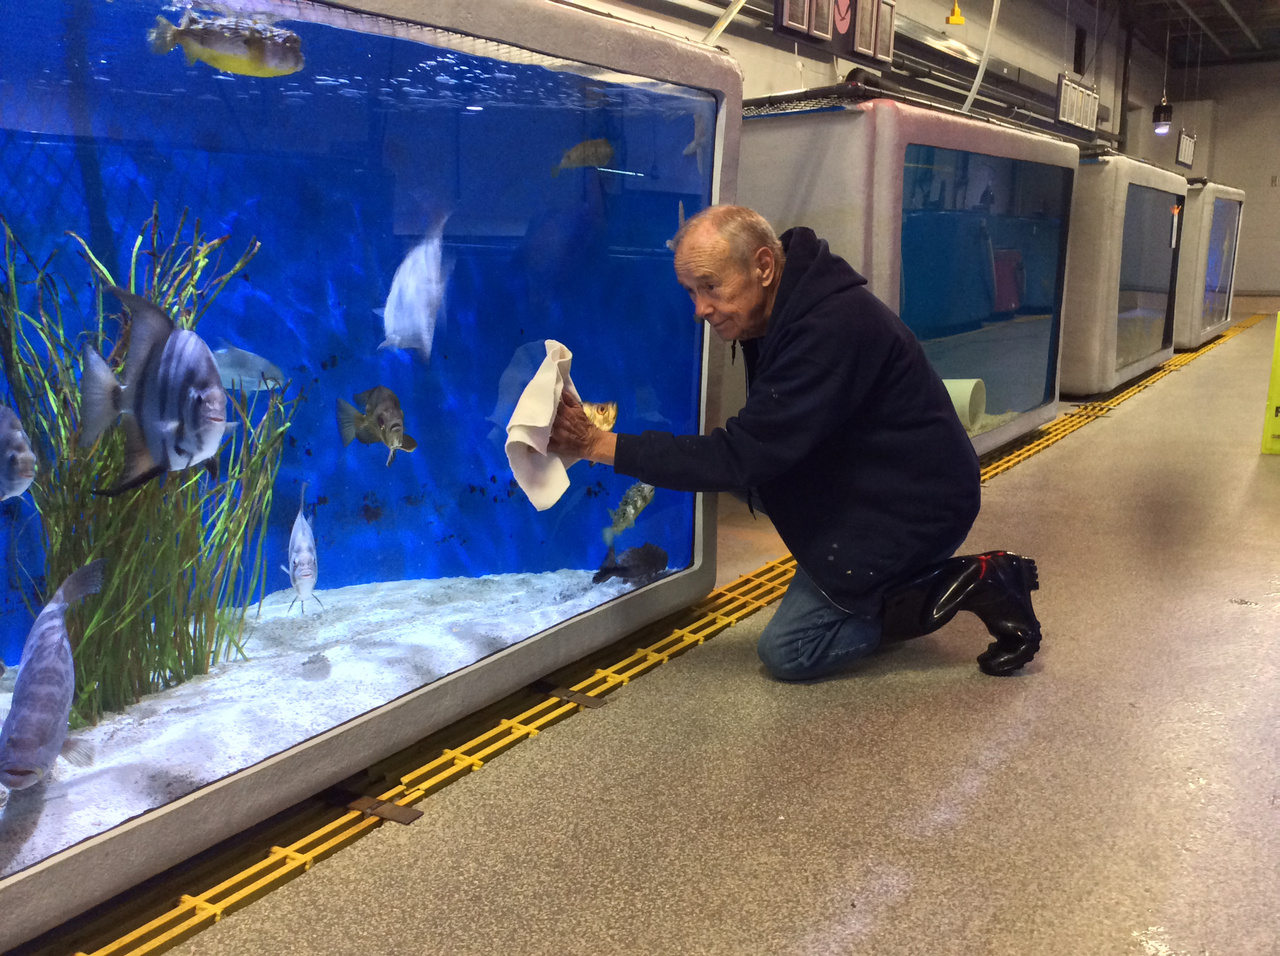 Elderly volunteer washes aquarium tanks.